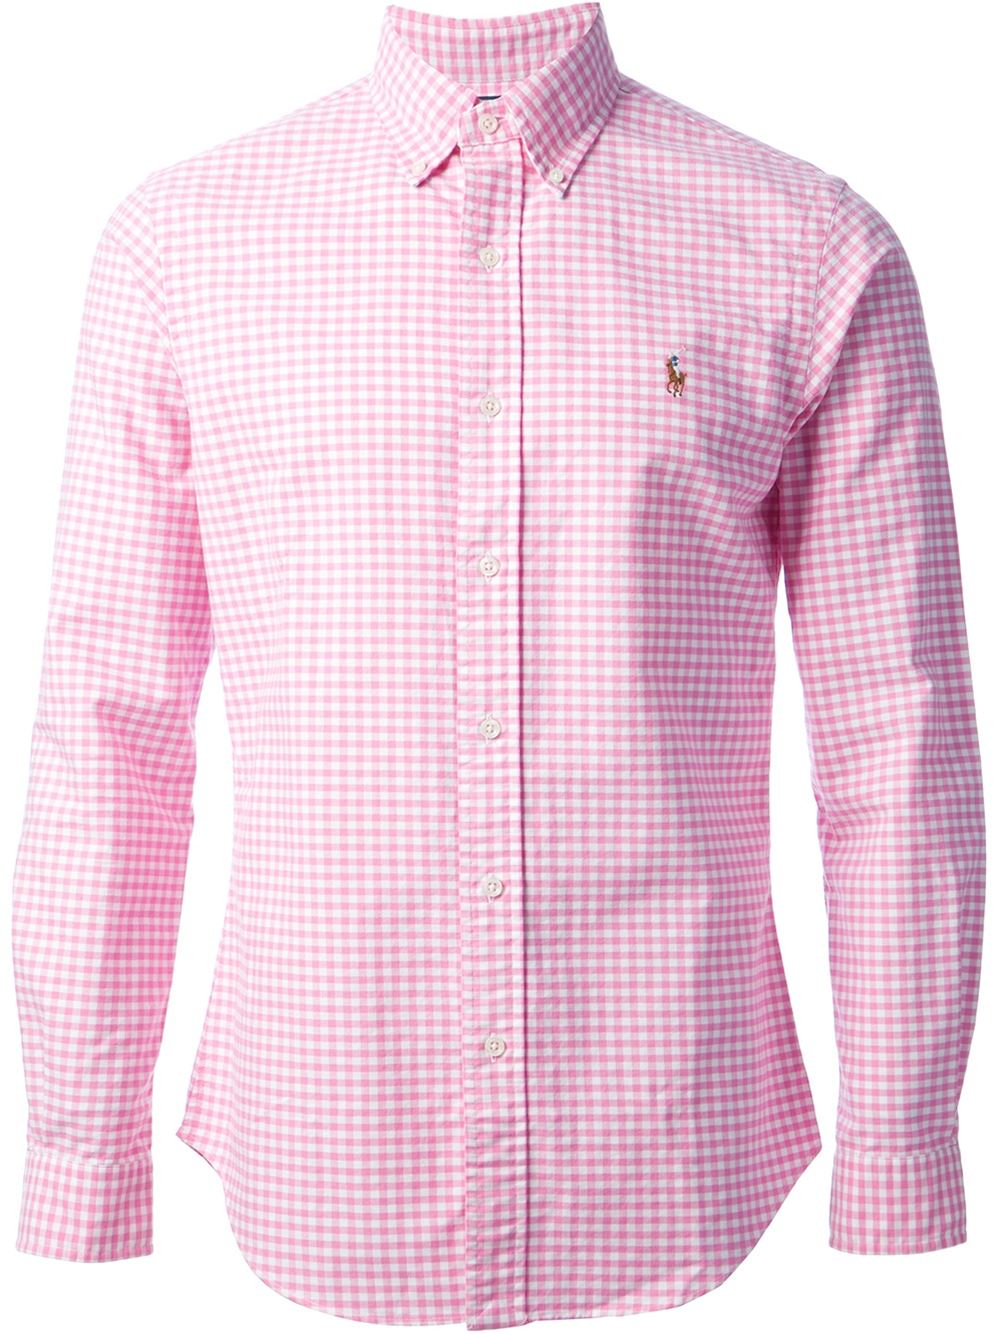 Polo ralph lauren checked shirt in pink for men pink for Pink and white ralph lauren shirt